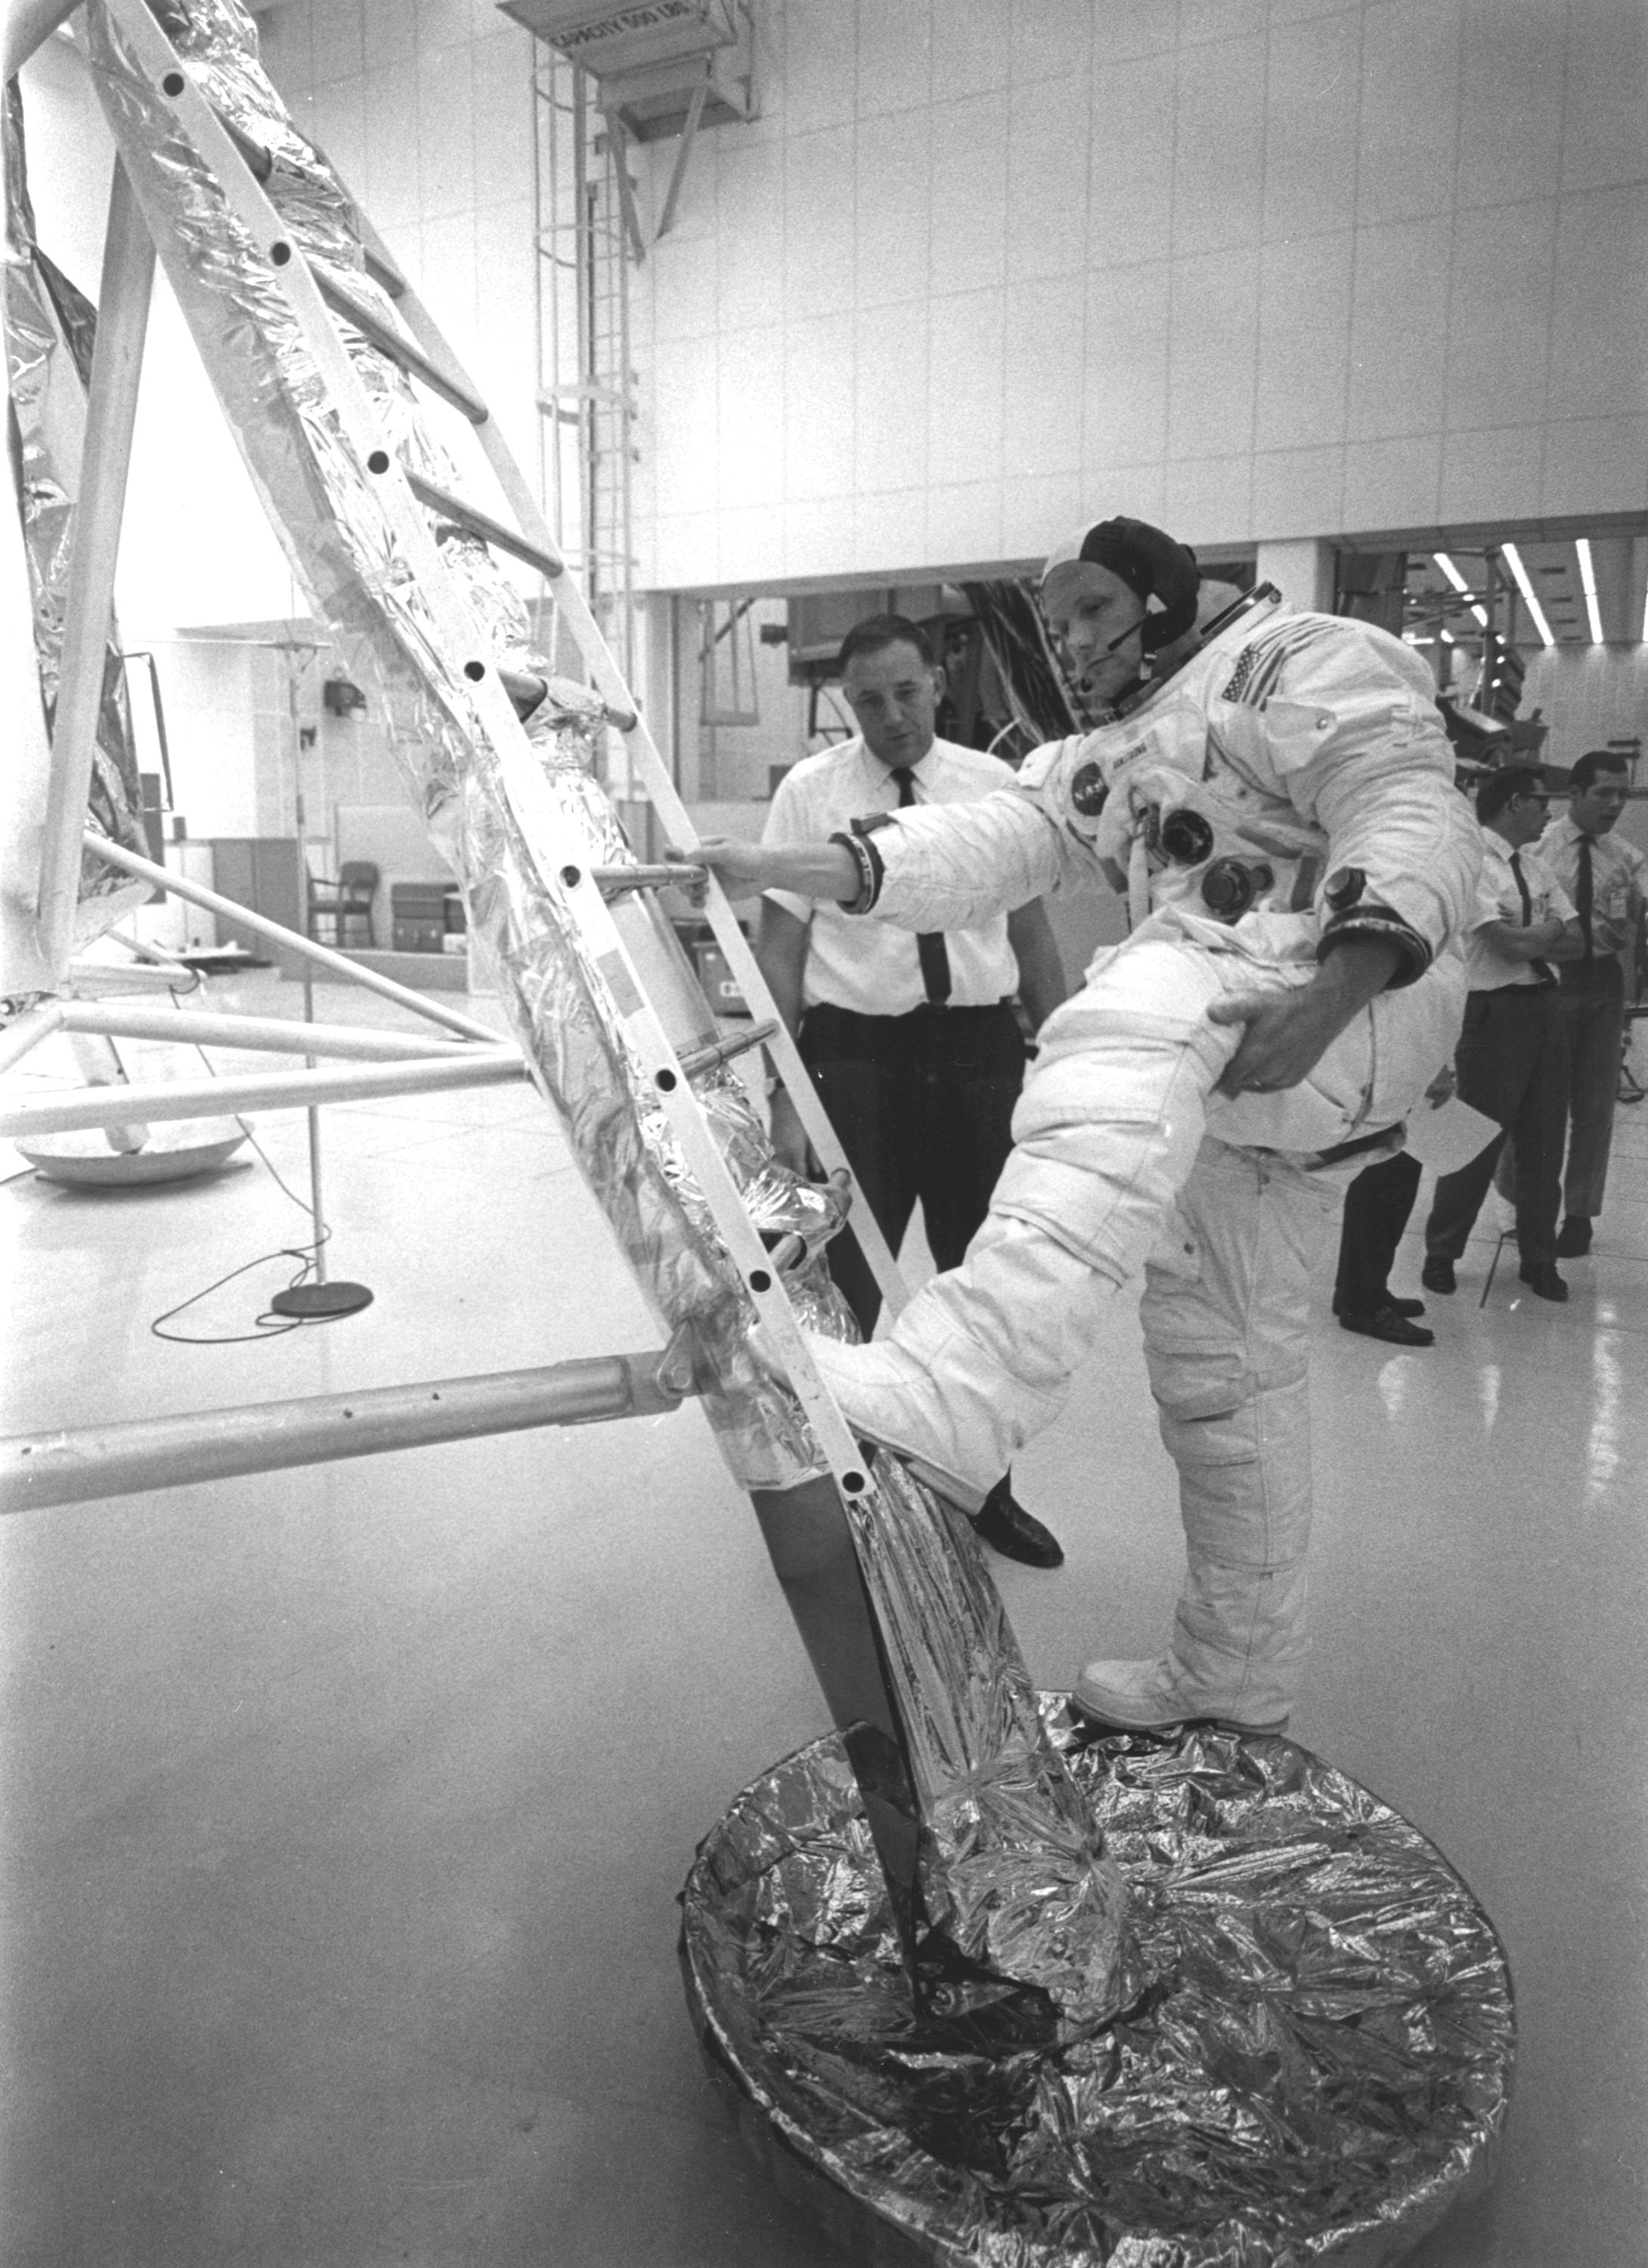 space missions before apollo 11 - photo #47